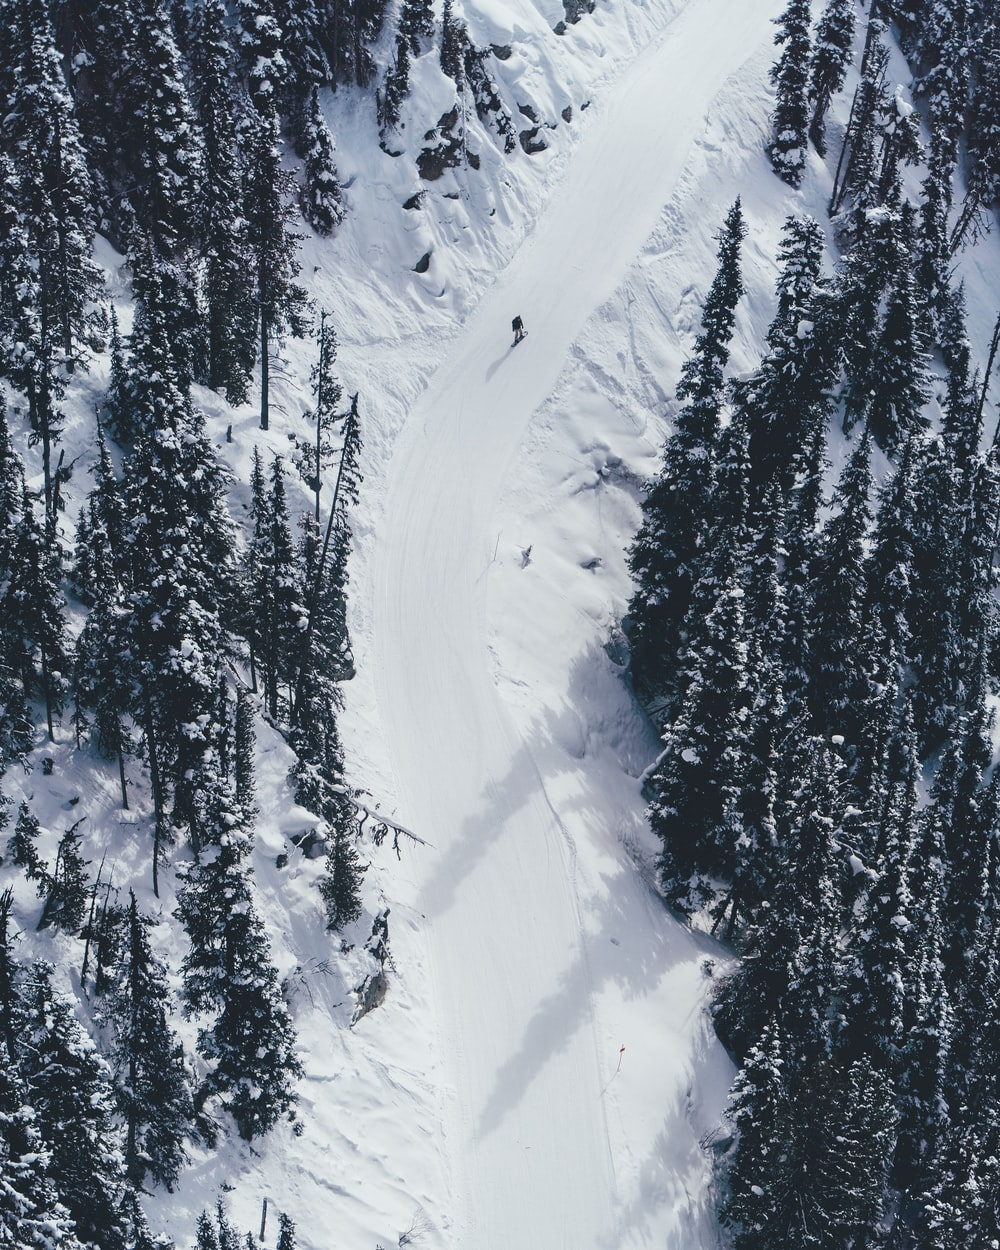 aerial photography of person skiing on snow mountain\